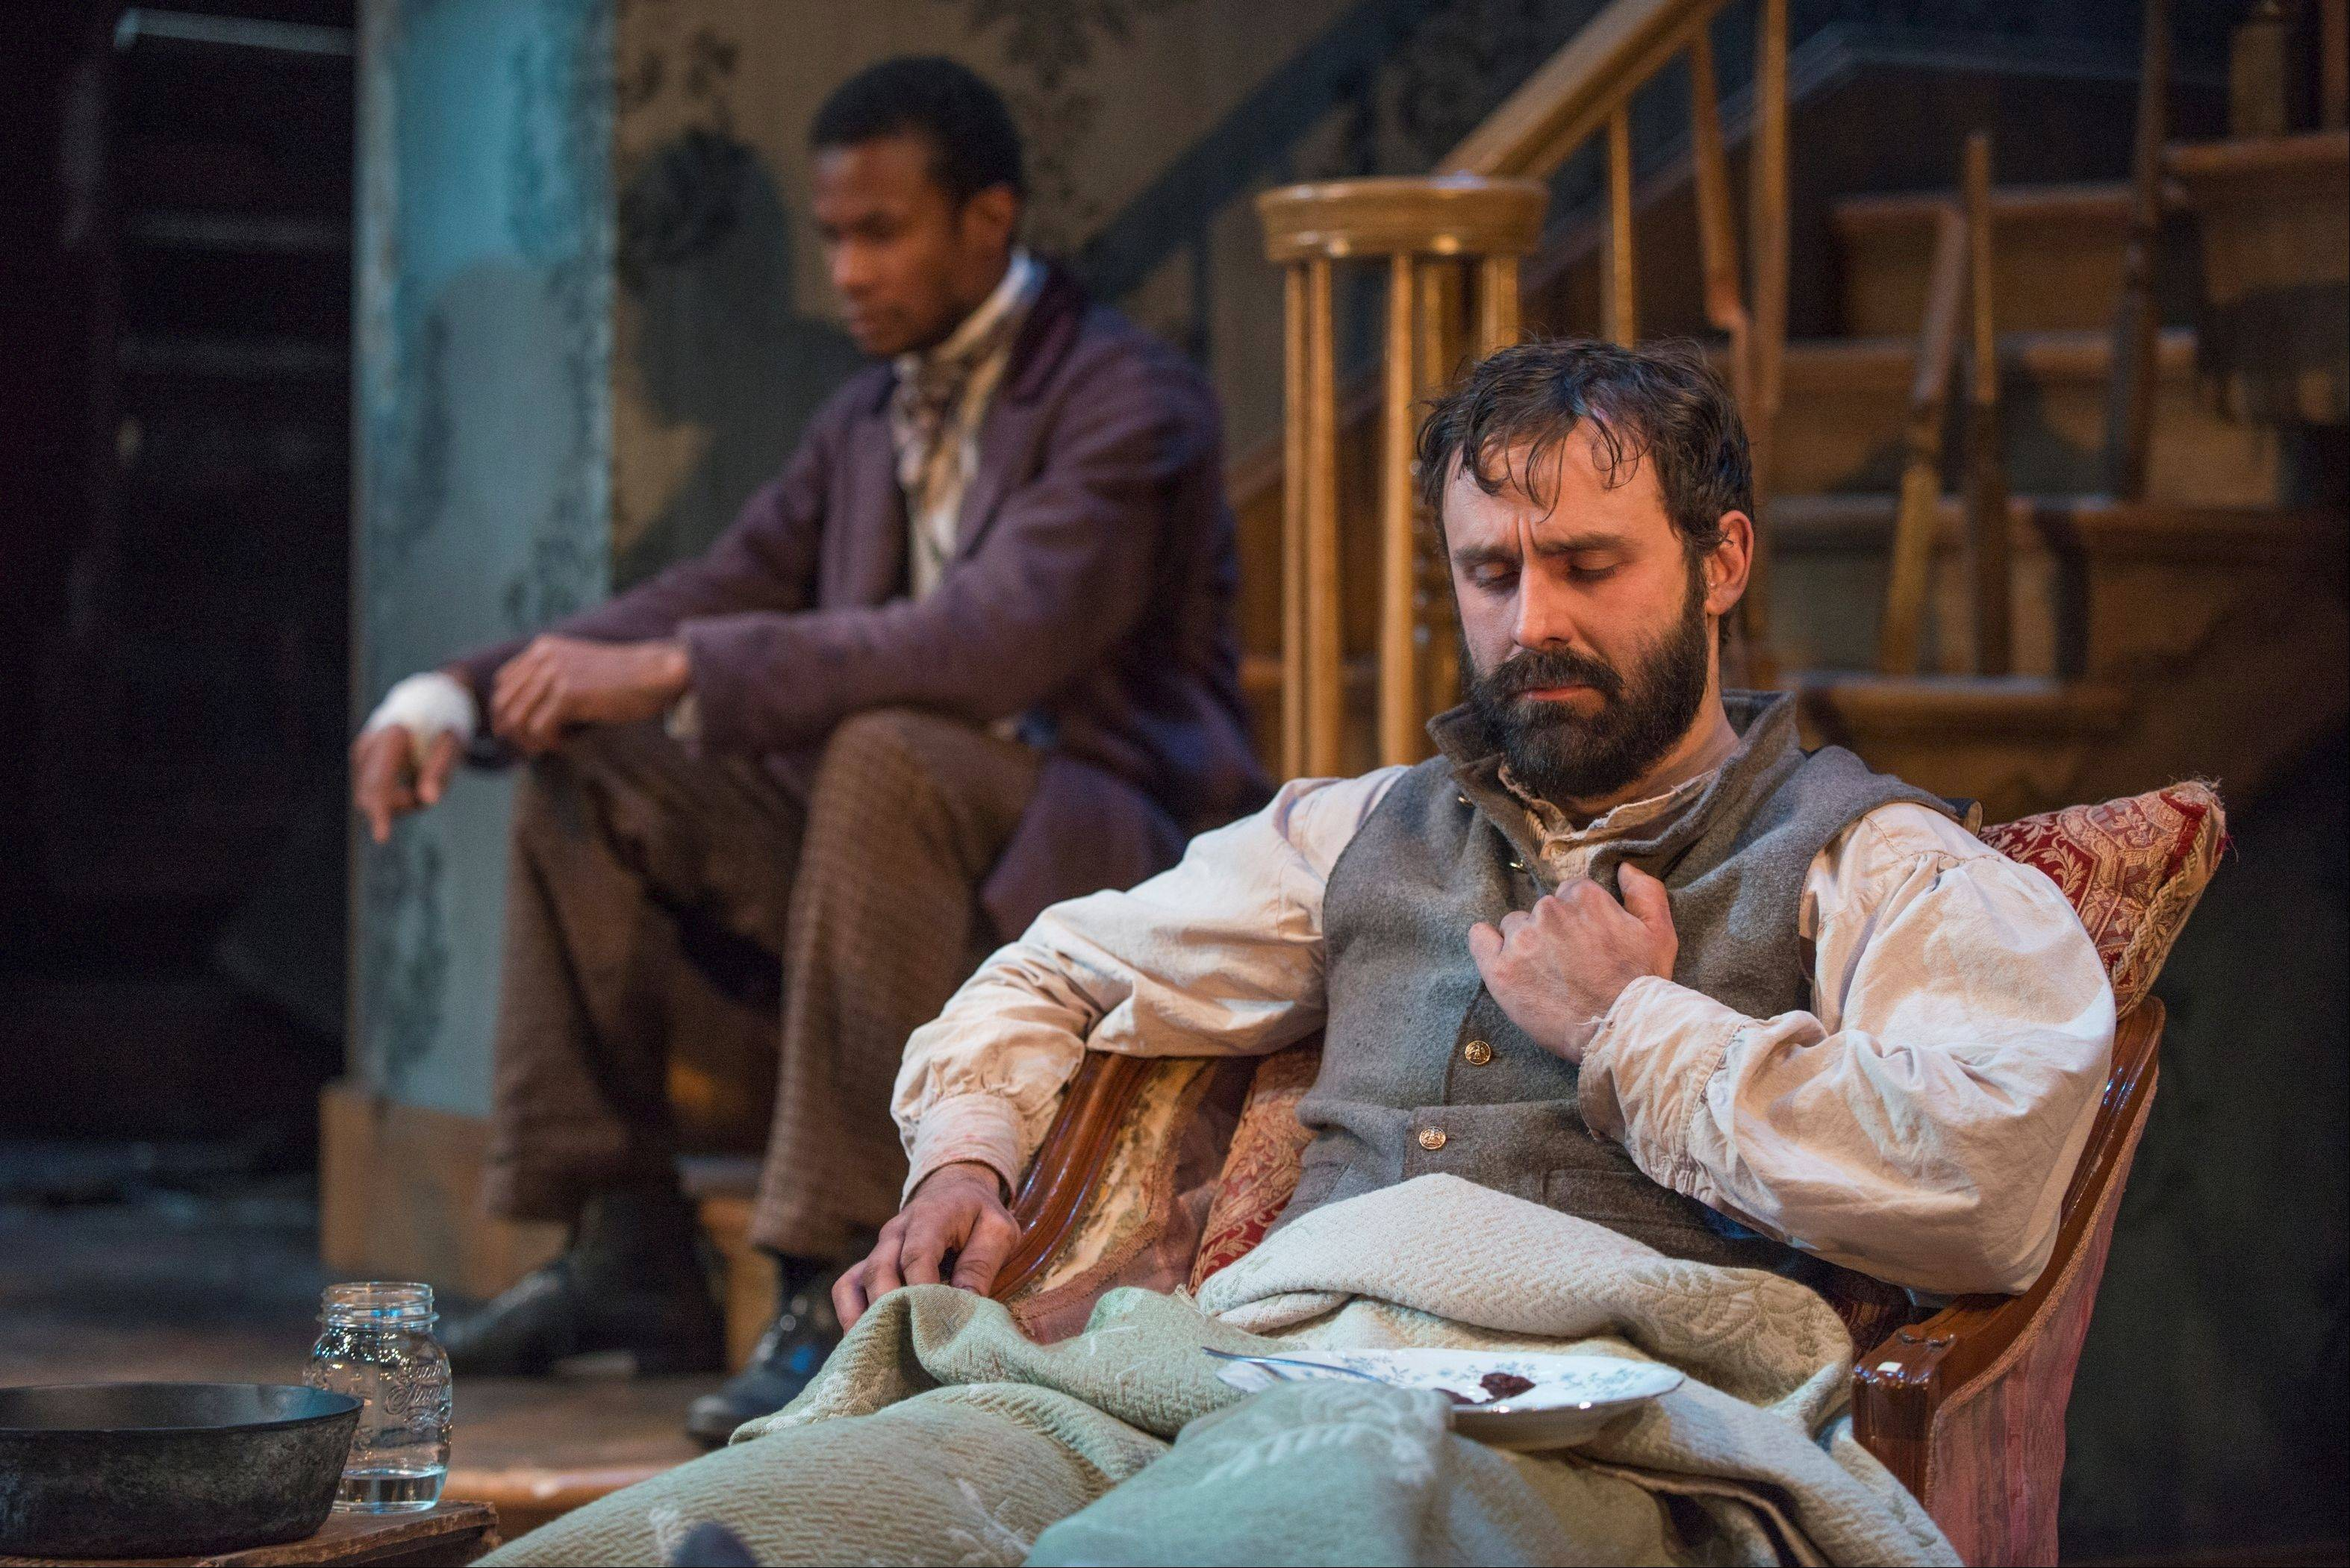 Issues of race, religion resonate in Northlight's 'Whipping Man'